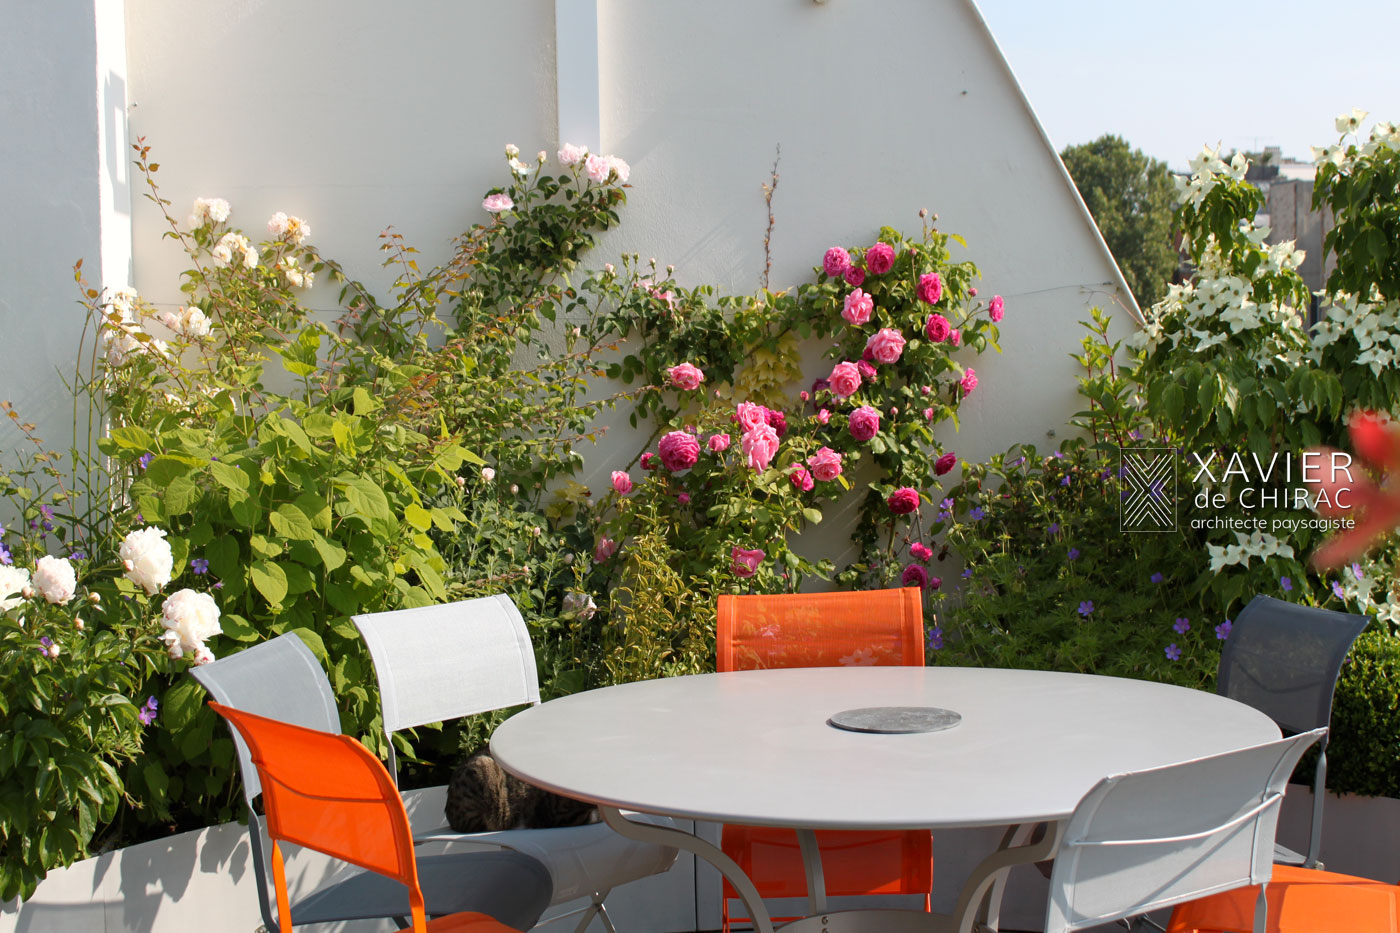 terrasse arc en ciel Paris New York terrace garden with flowers Xavier de Chirac